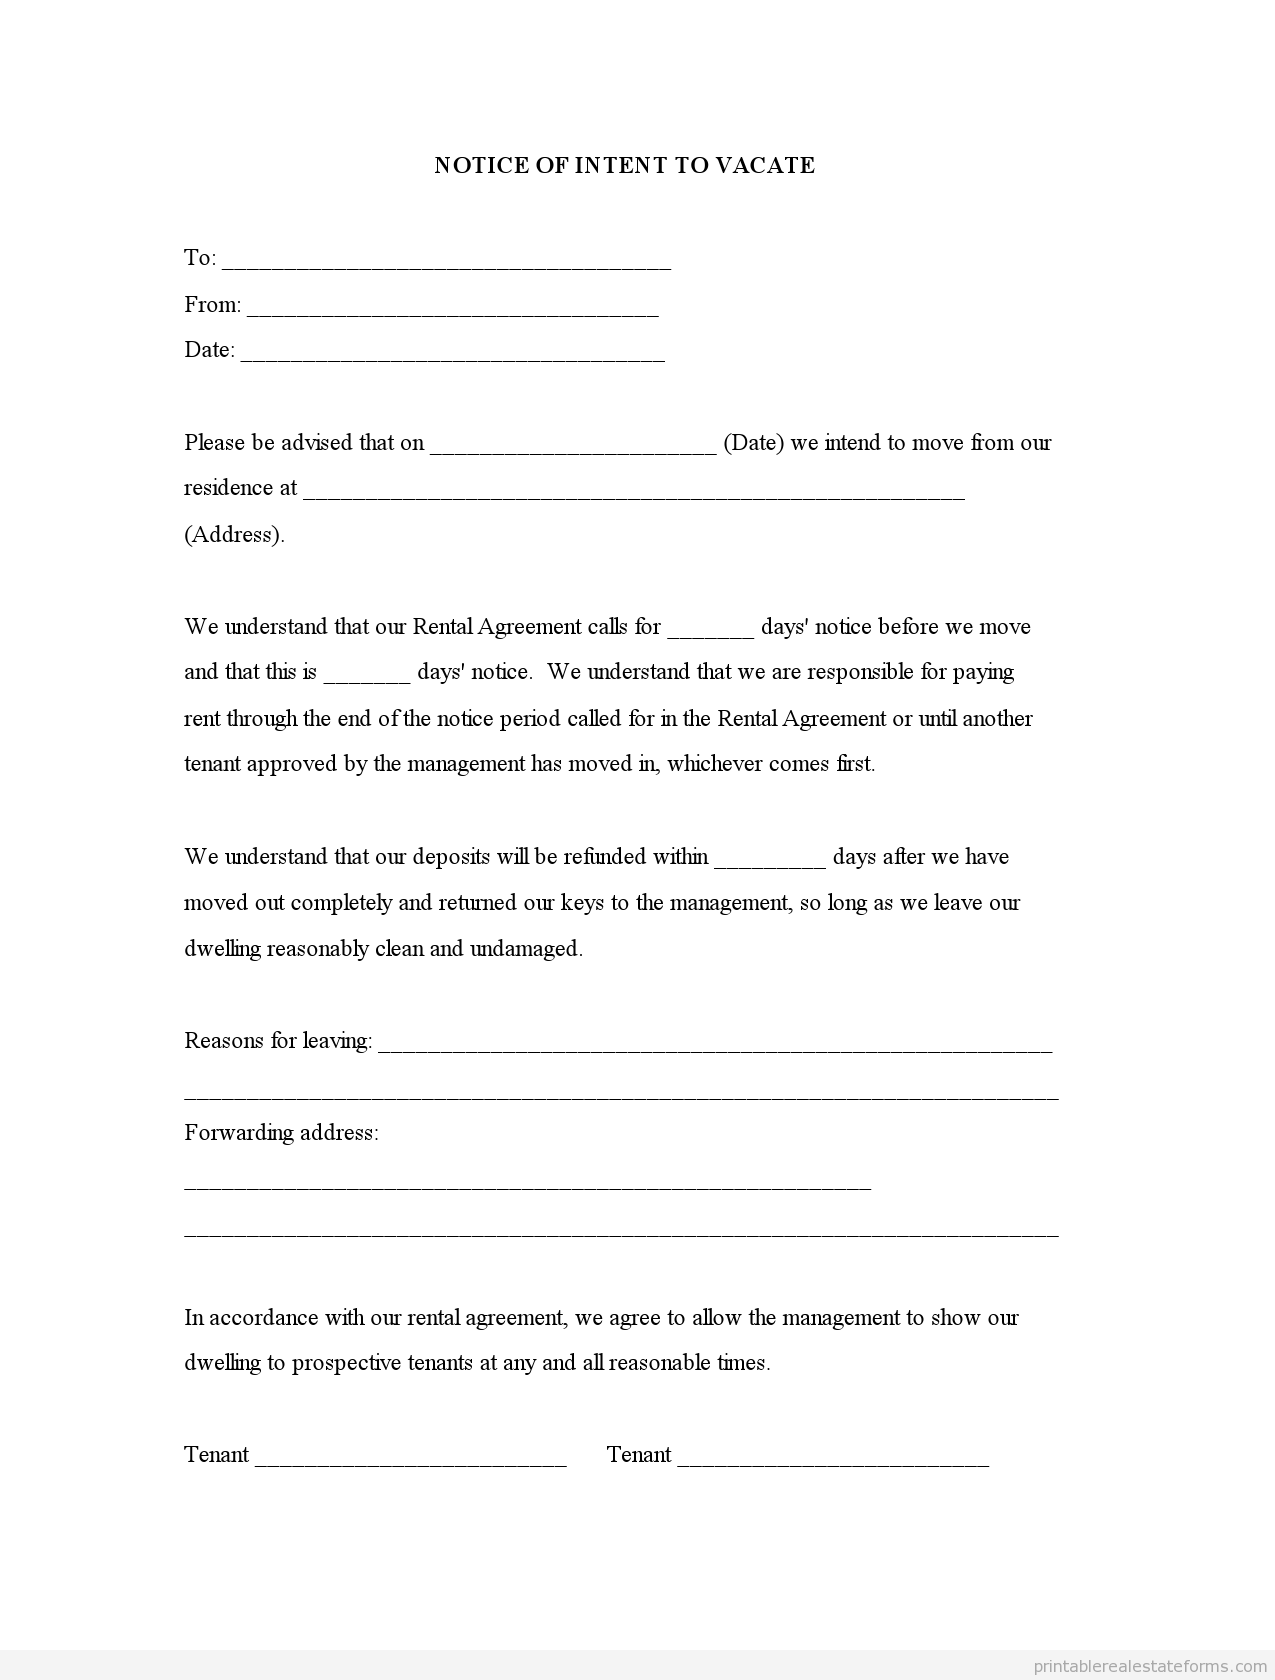 Sample Printable notice of intent to vacate Form | Printable Real ...